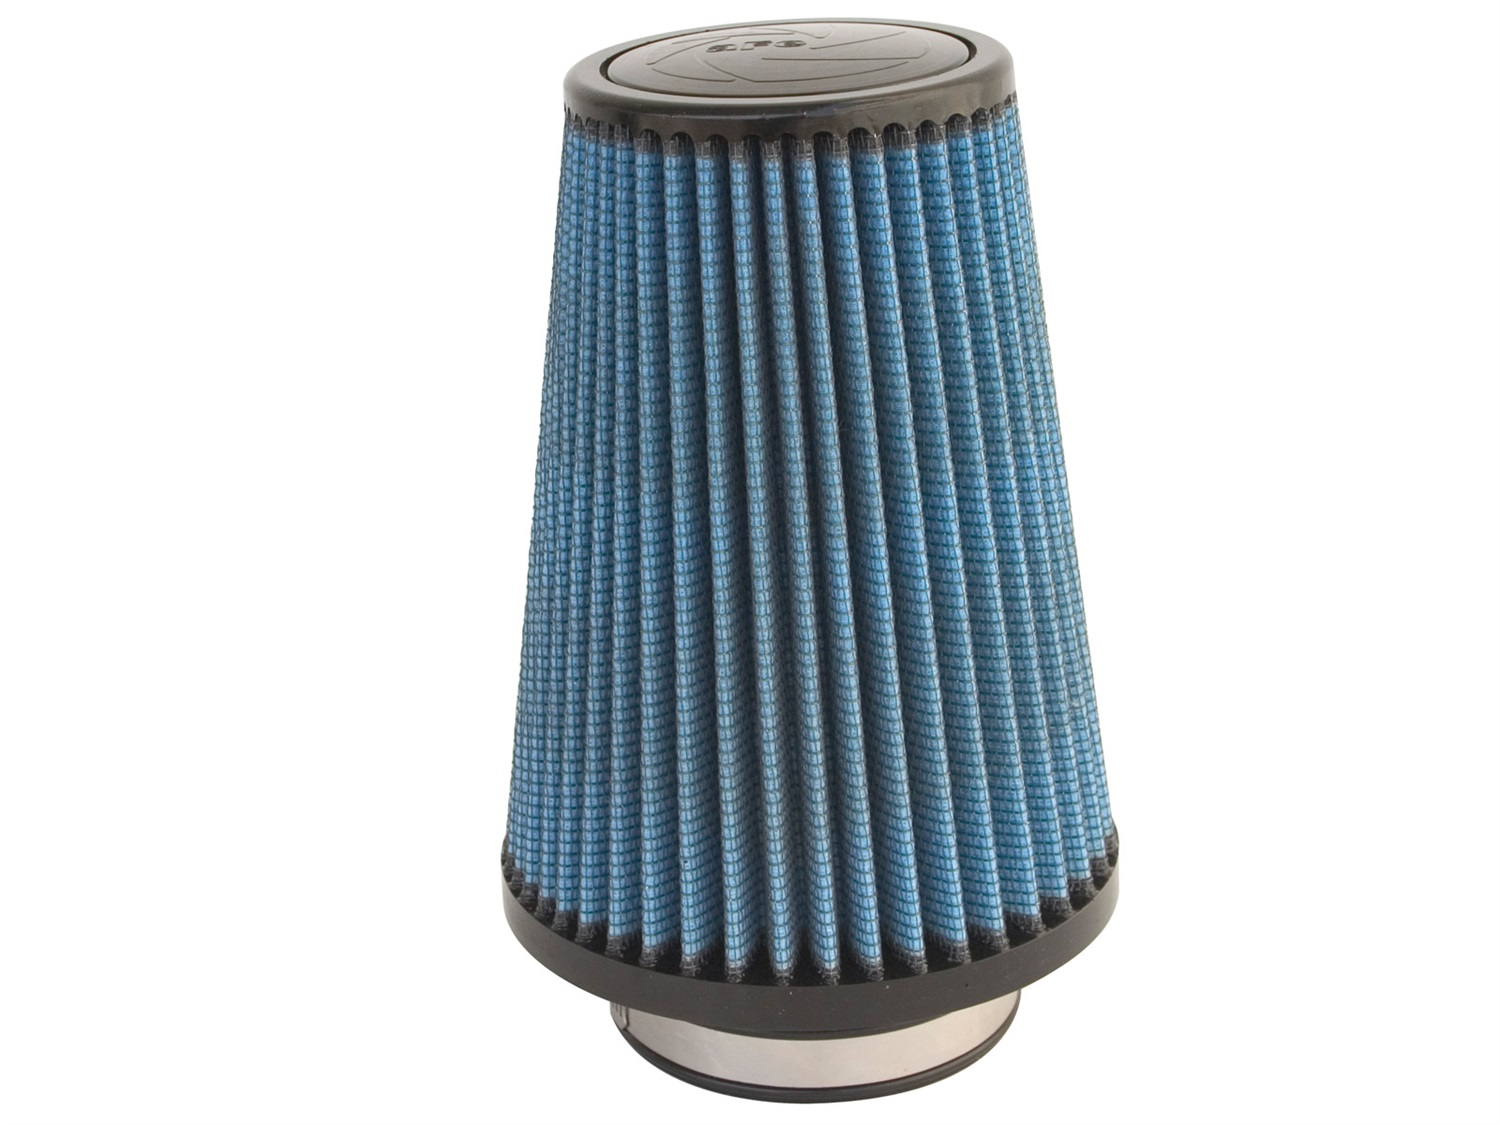 aFe Power 24-35008 MagnumFLOW Intake PRO 5R Air Filter 24-35008